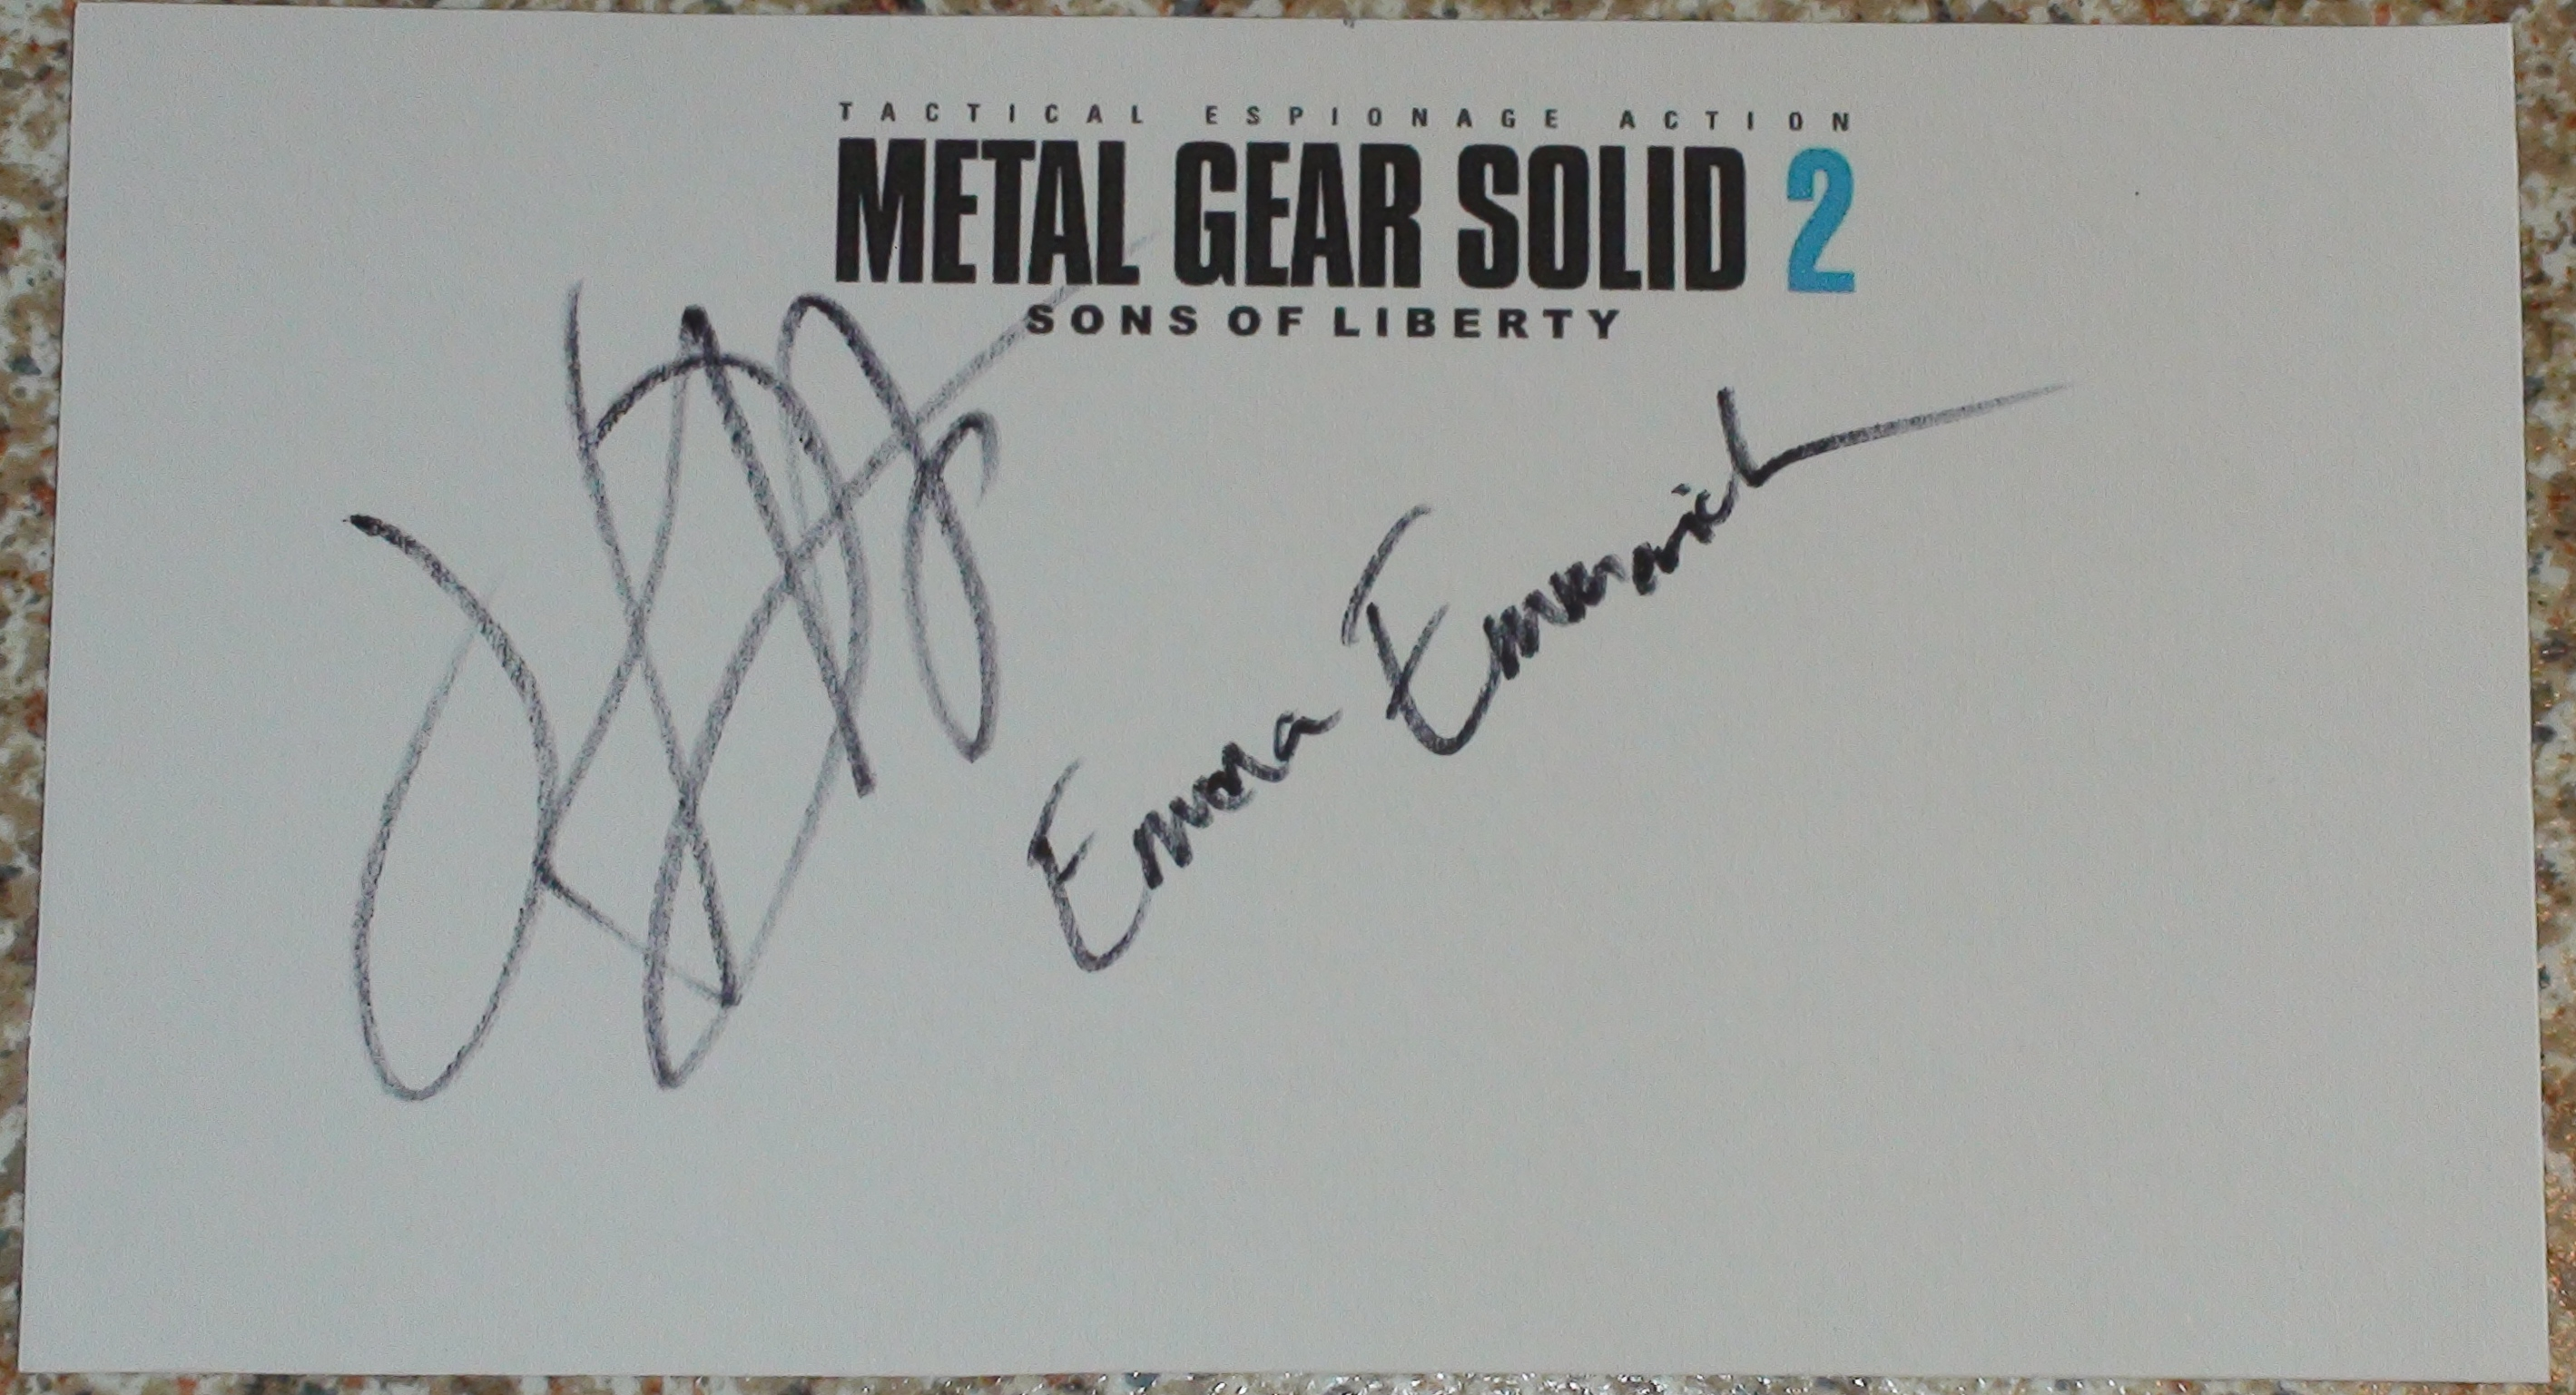 Metal Gear Solid Video Game Autographs